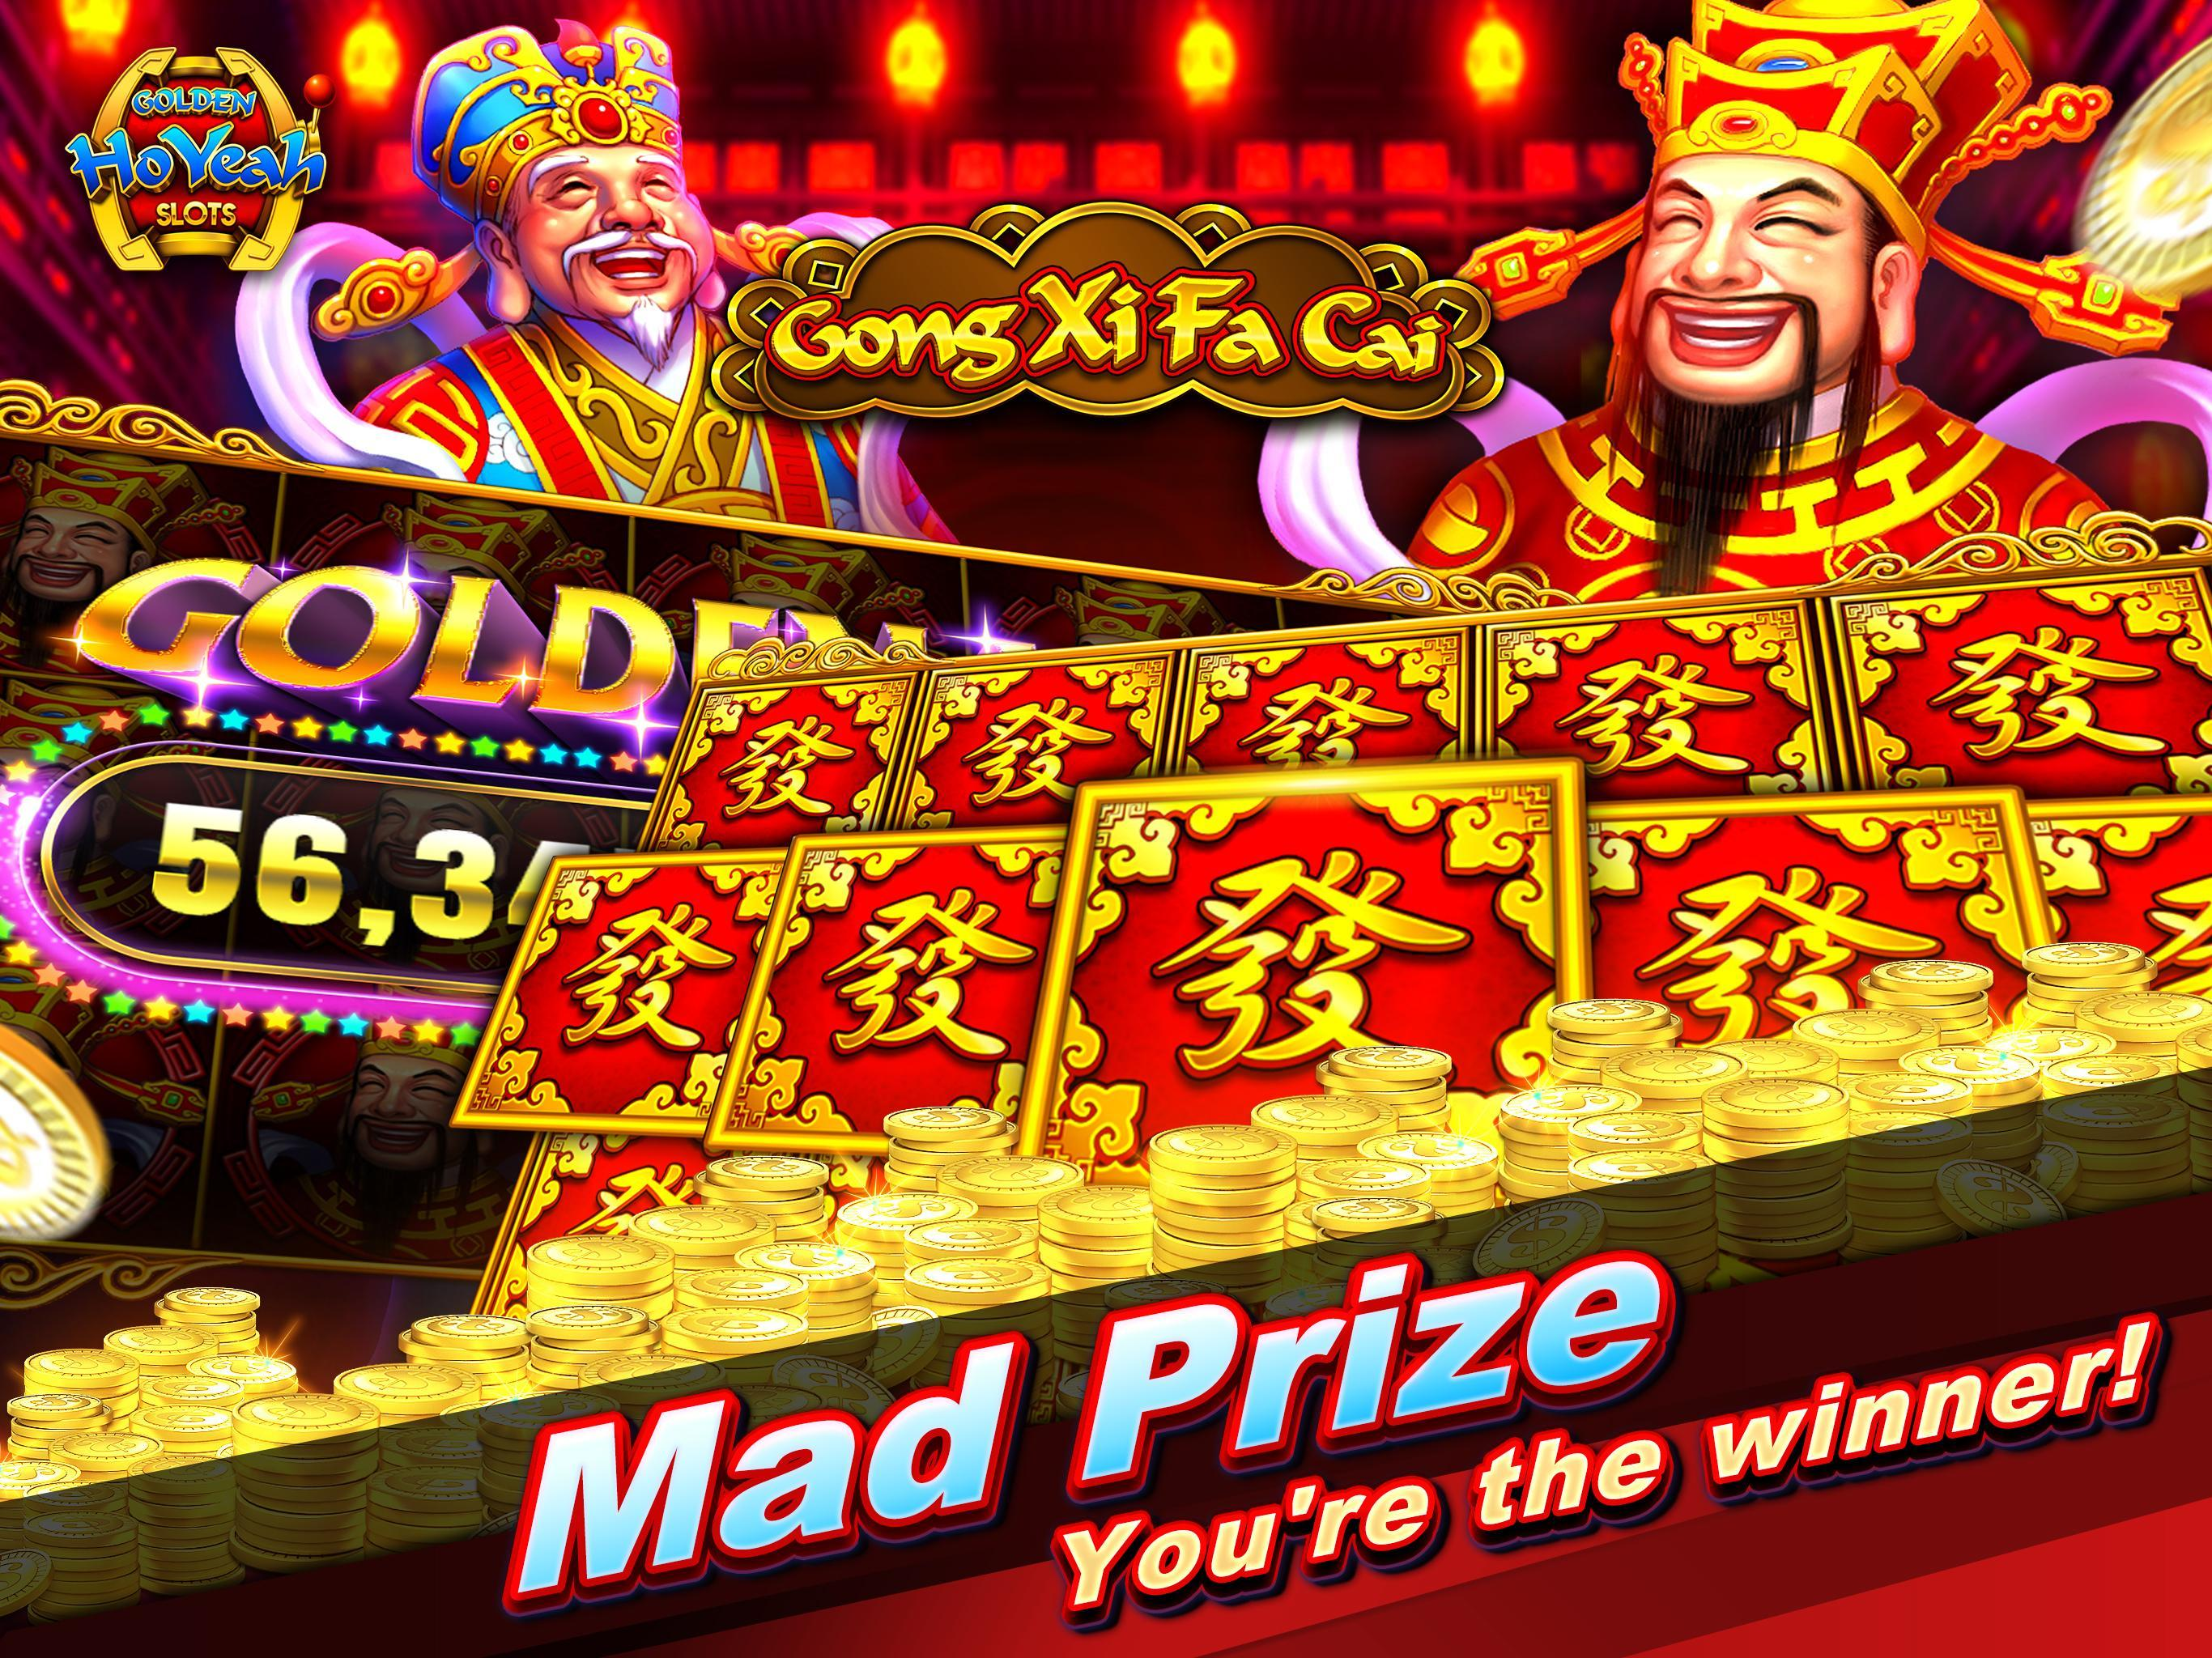 Slots Golden Hoyeah Casino Slots For Android Apk Download